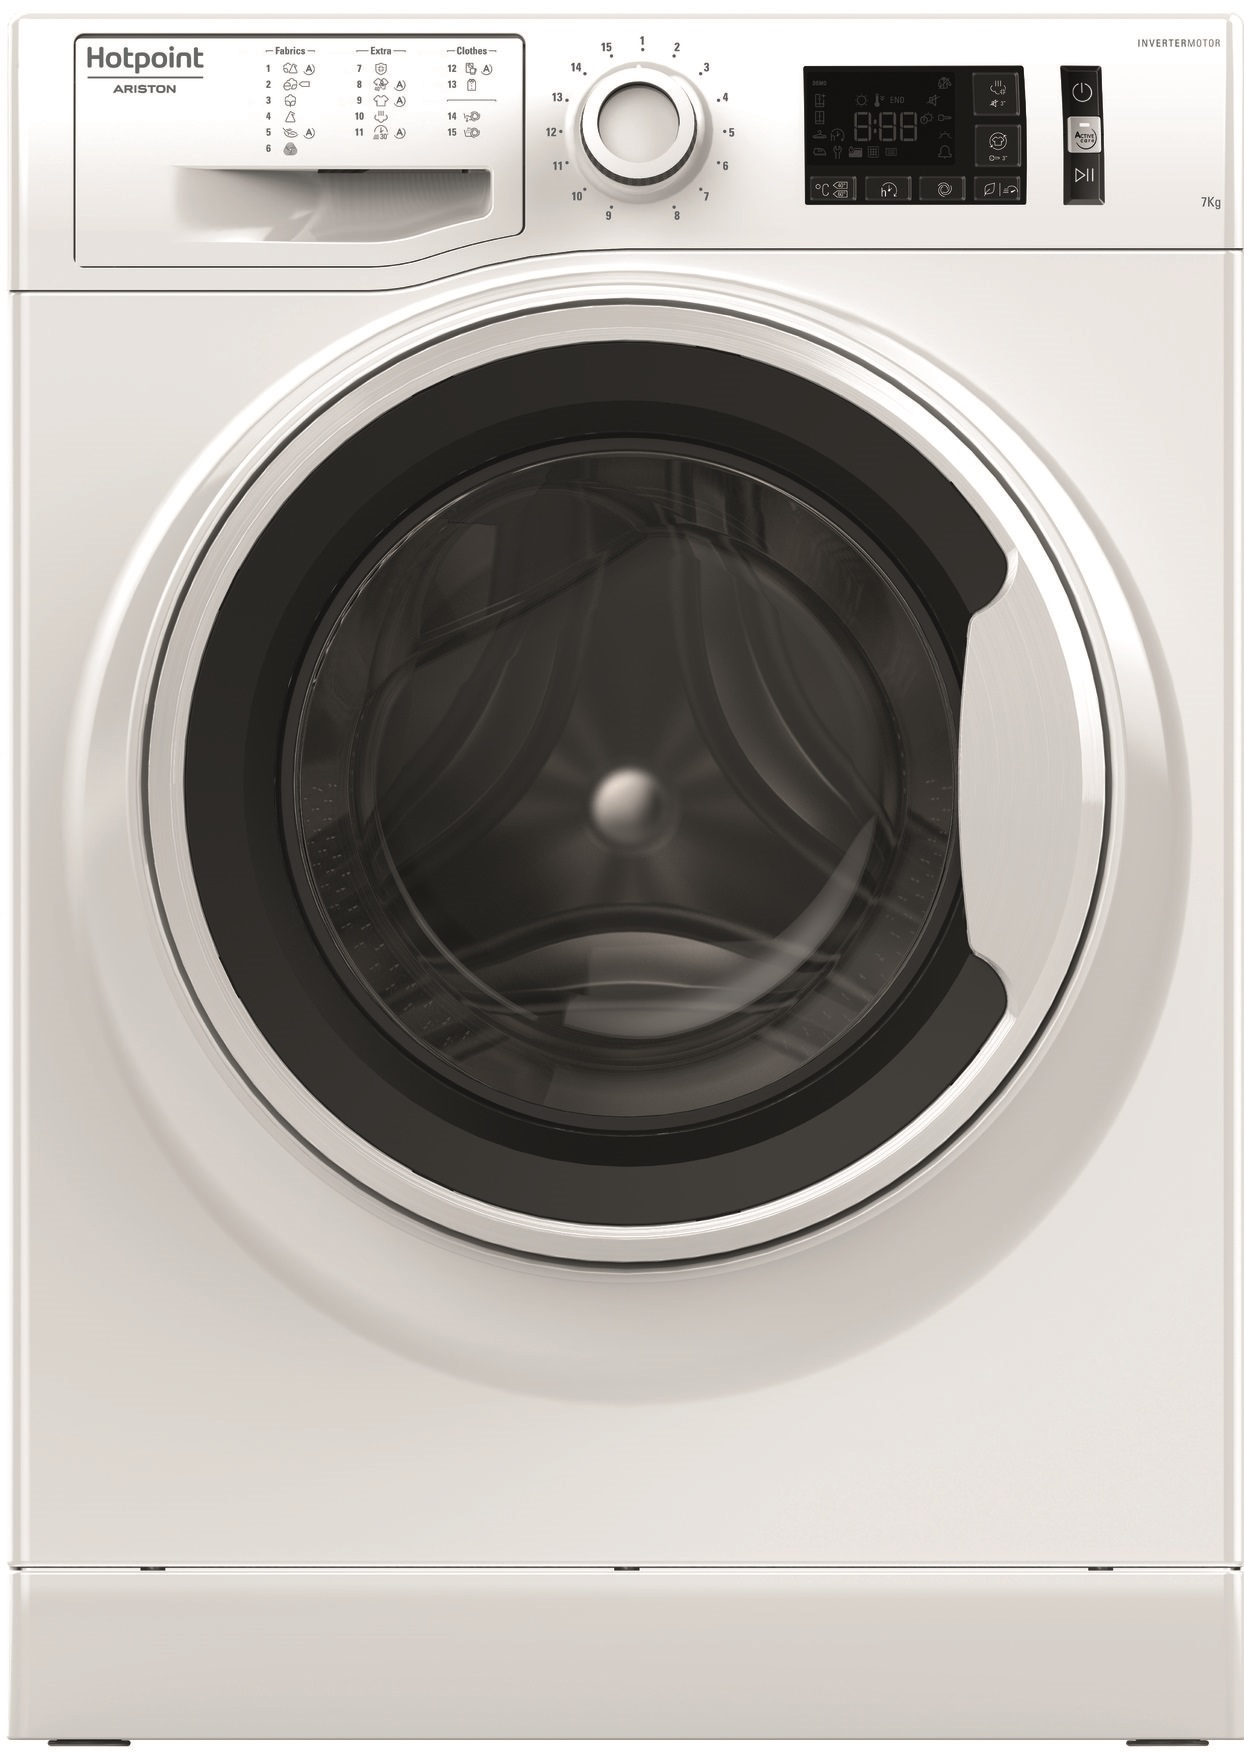 ПЕРАЛНЯ HOTPOINT ARISTON NM11 744 WW A EU